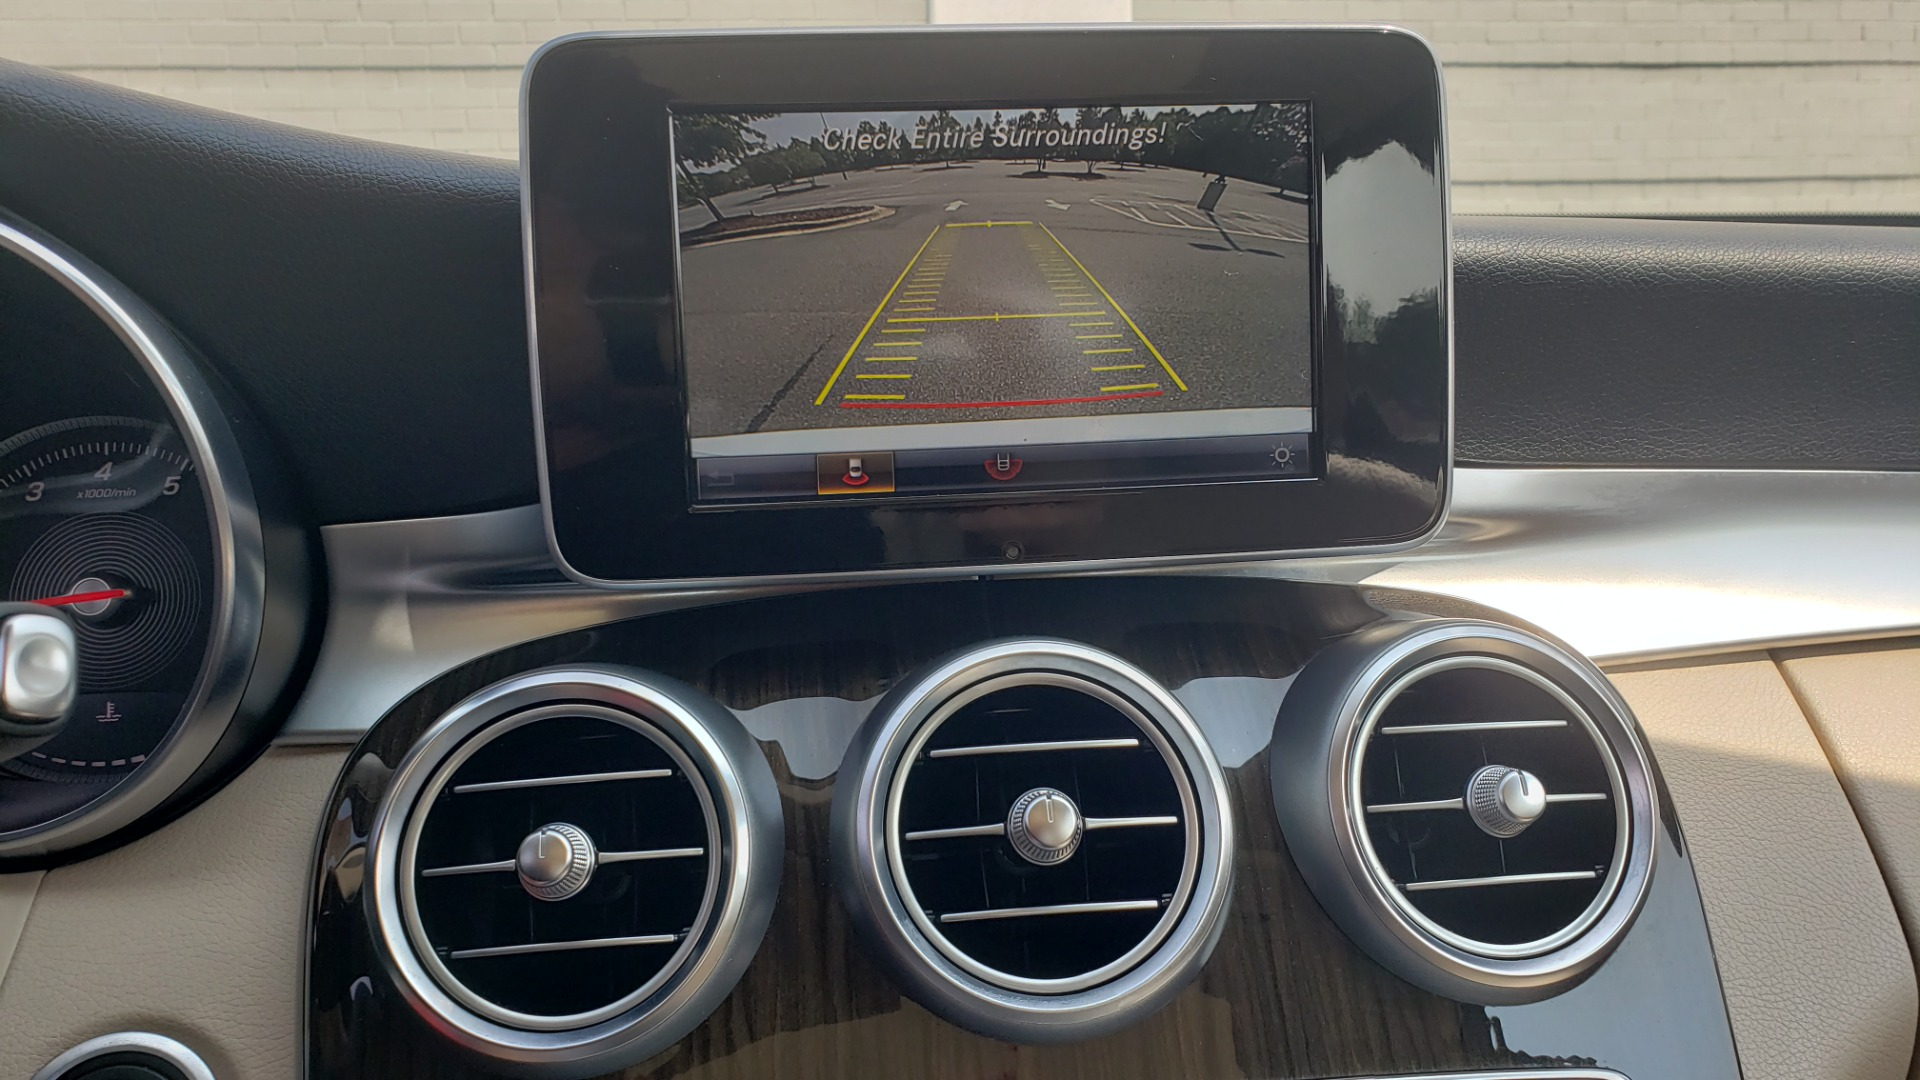 Used 2018 Mercedes-Benz C-CLASS C 300 PREMIUM / KEYLESS-GO / APPLE / PANO-ROOF / REARVIEW for sale $28,295 at Formula Imports in Charlotte NC 28227 42